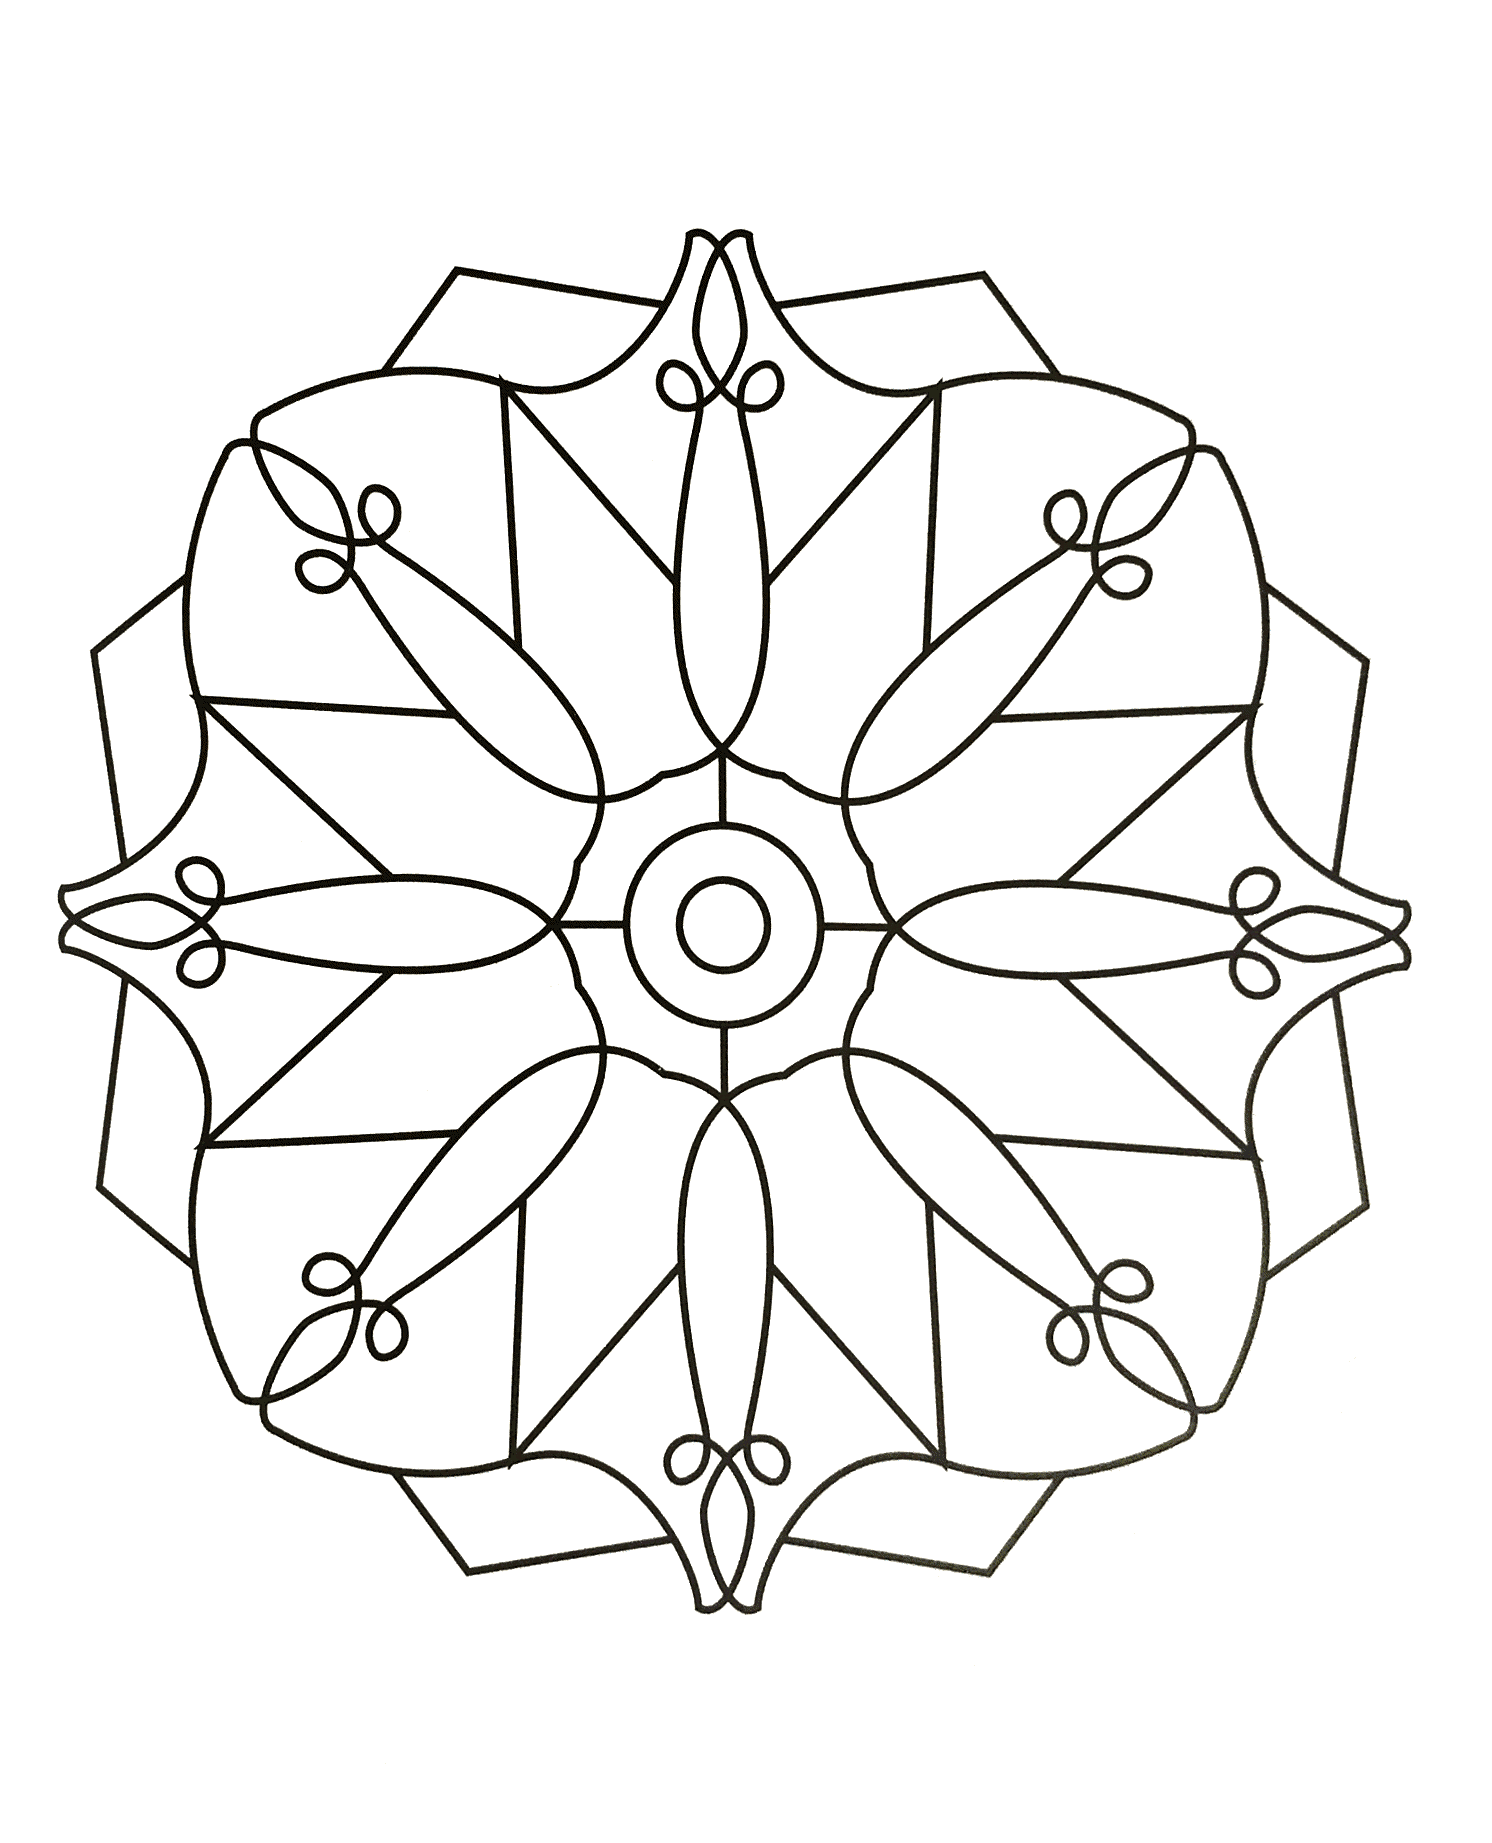 Mandalas To Print Free 33 Simple Mandalas 100